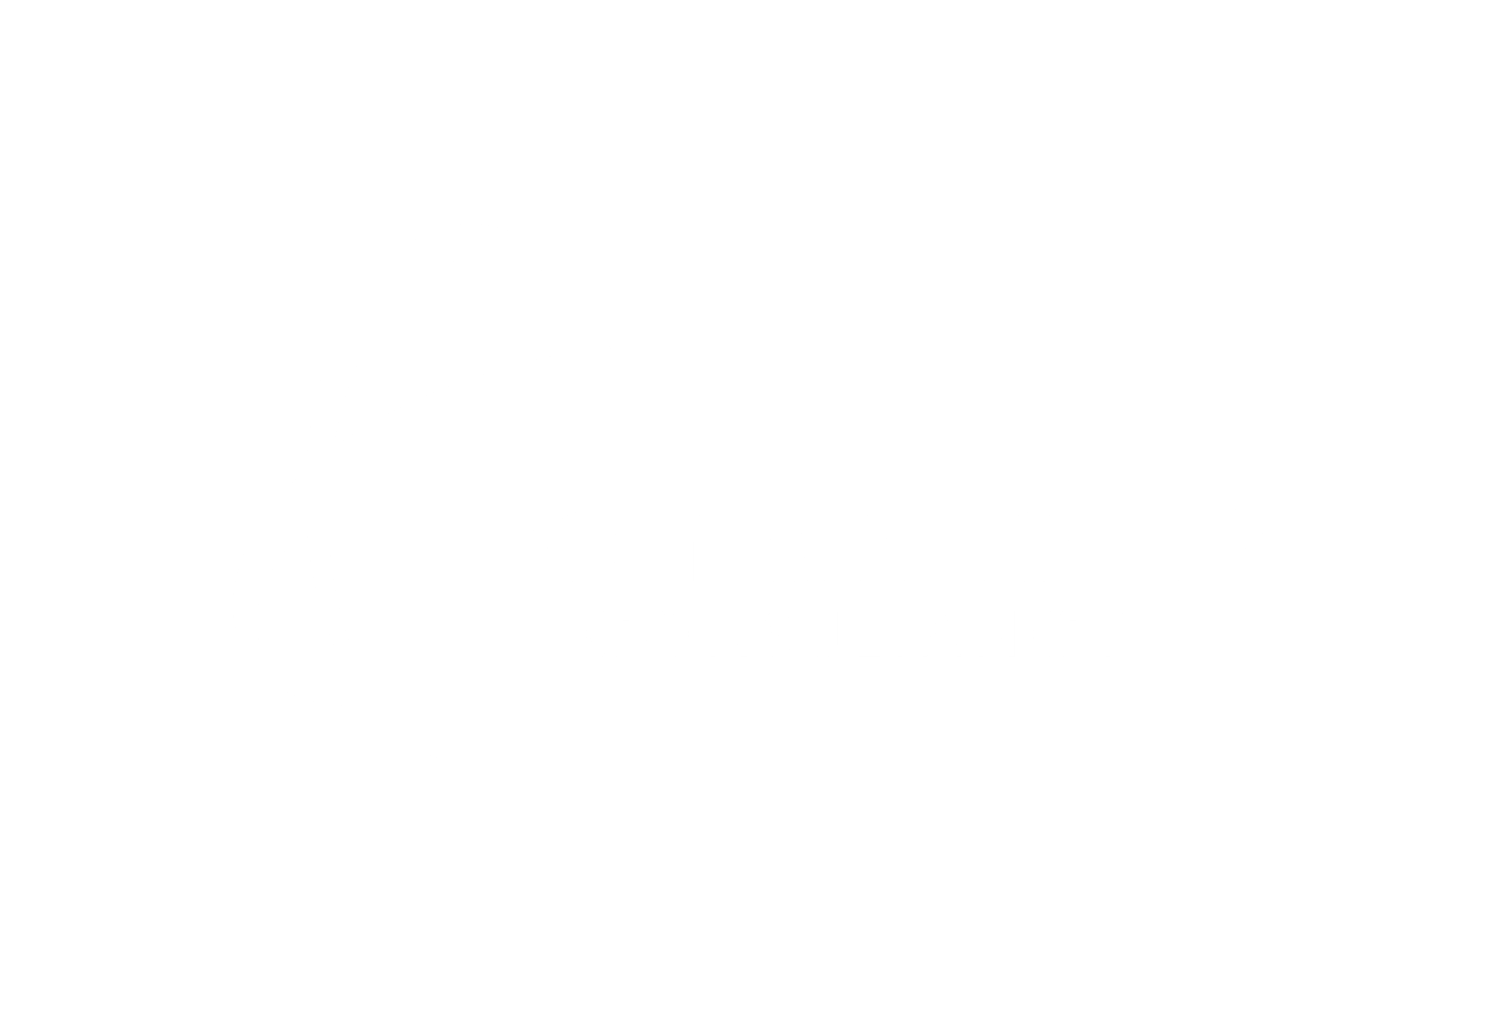 Fremantle HR Consultancy